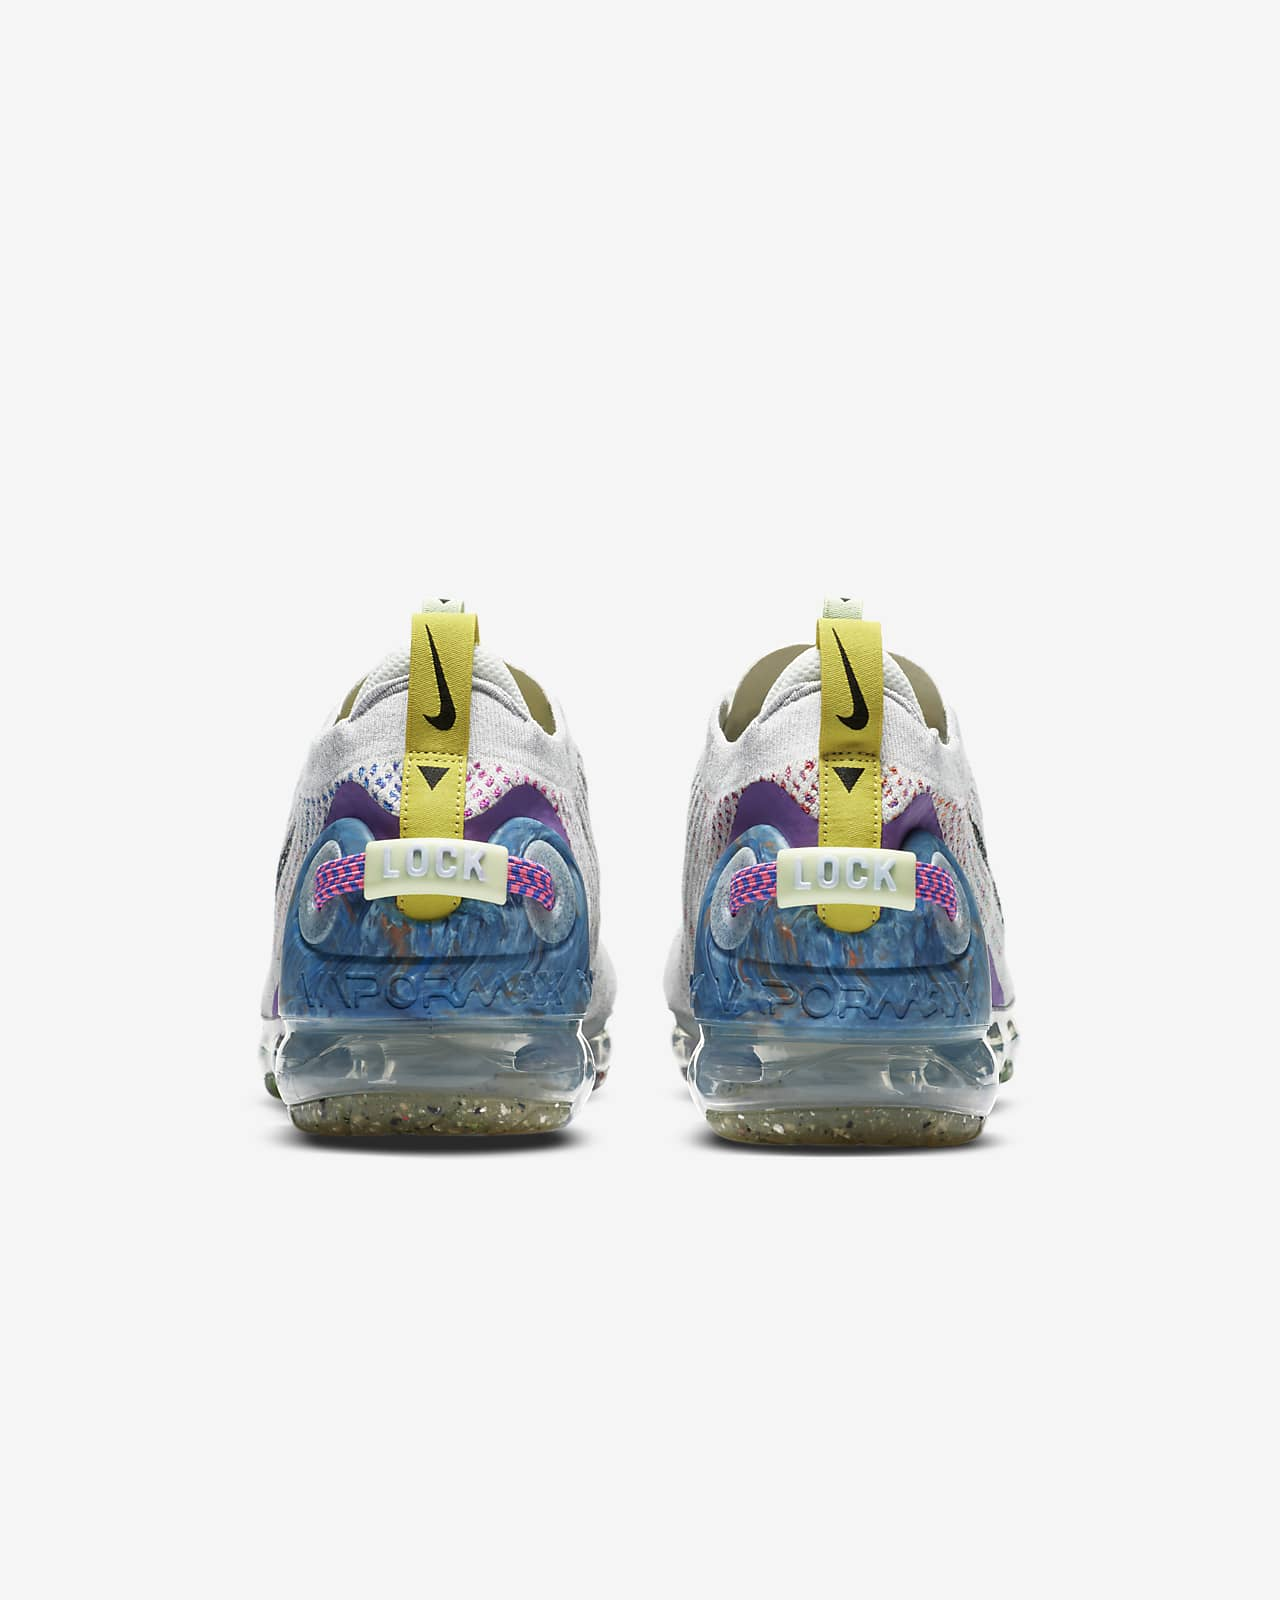 Nike Air Vapormax collection products 2020 store